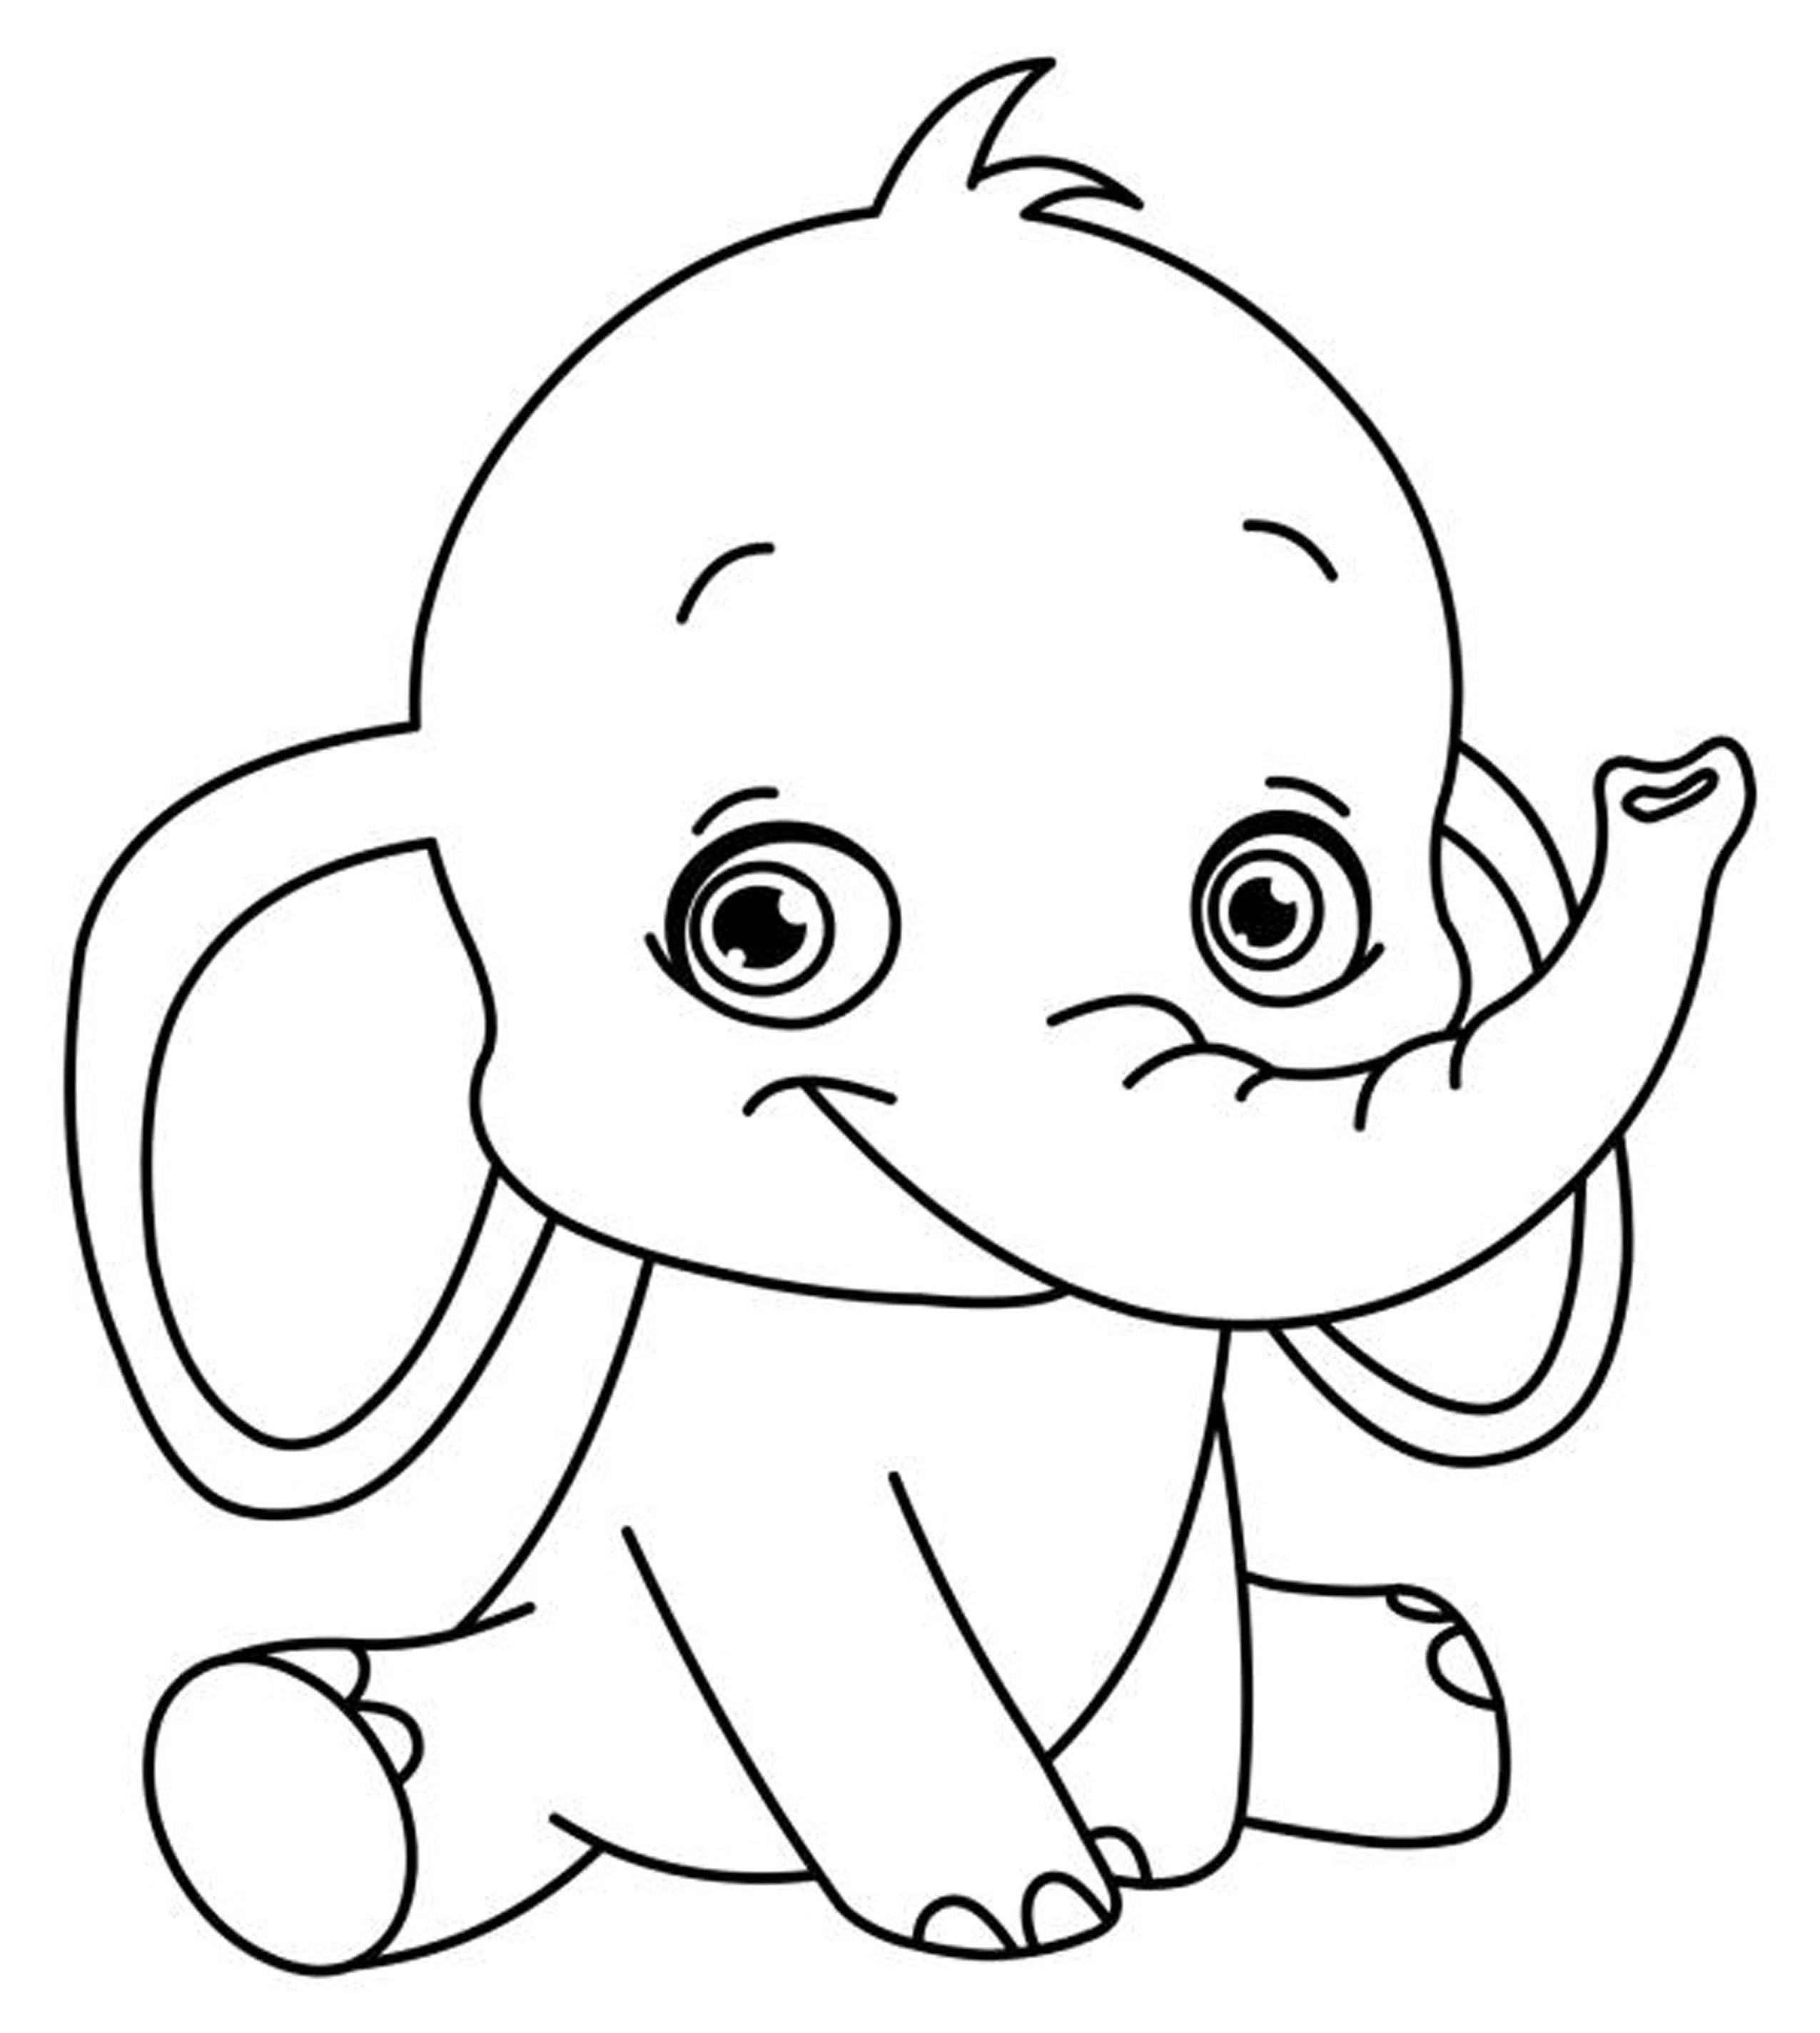 pictures of kids coloring snow white coloring pages to download and print for free of pictures coloring kids